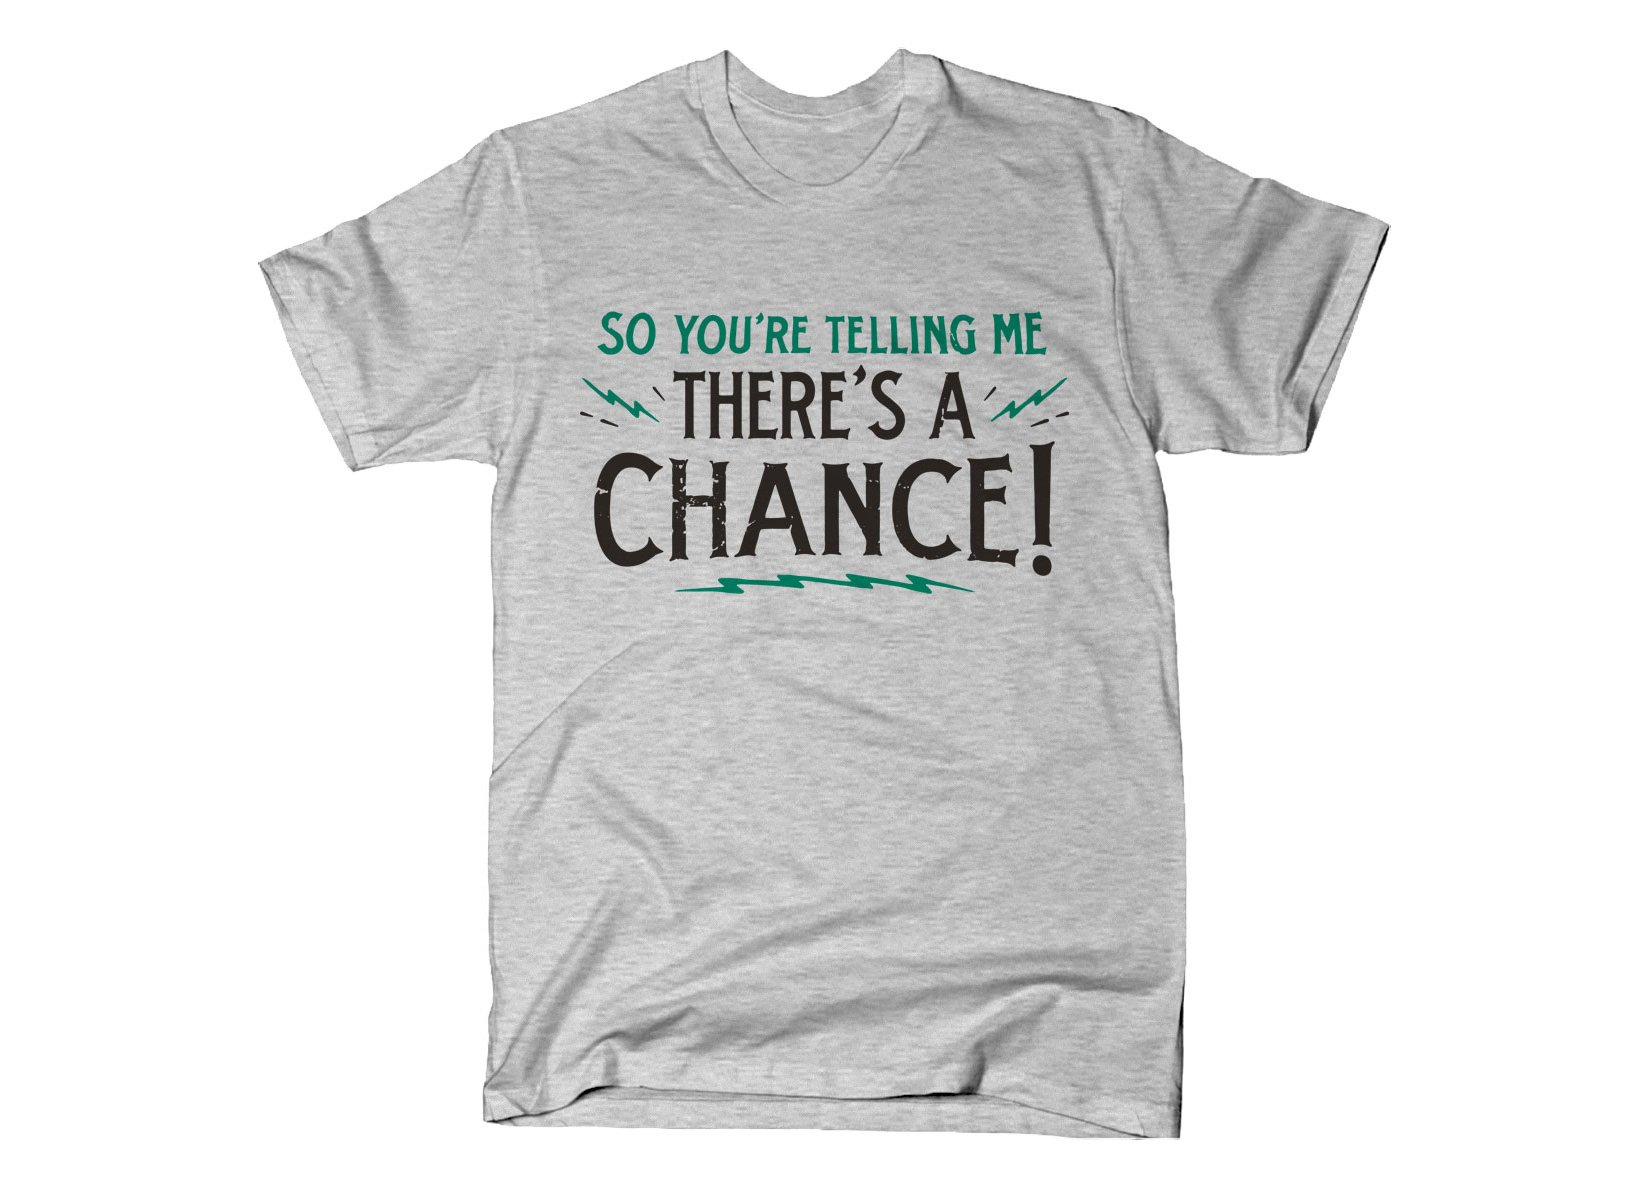 So You're Telling Me There's A Chance on Mens T-Shirt